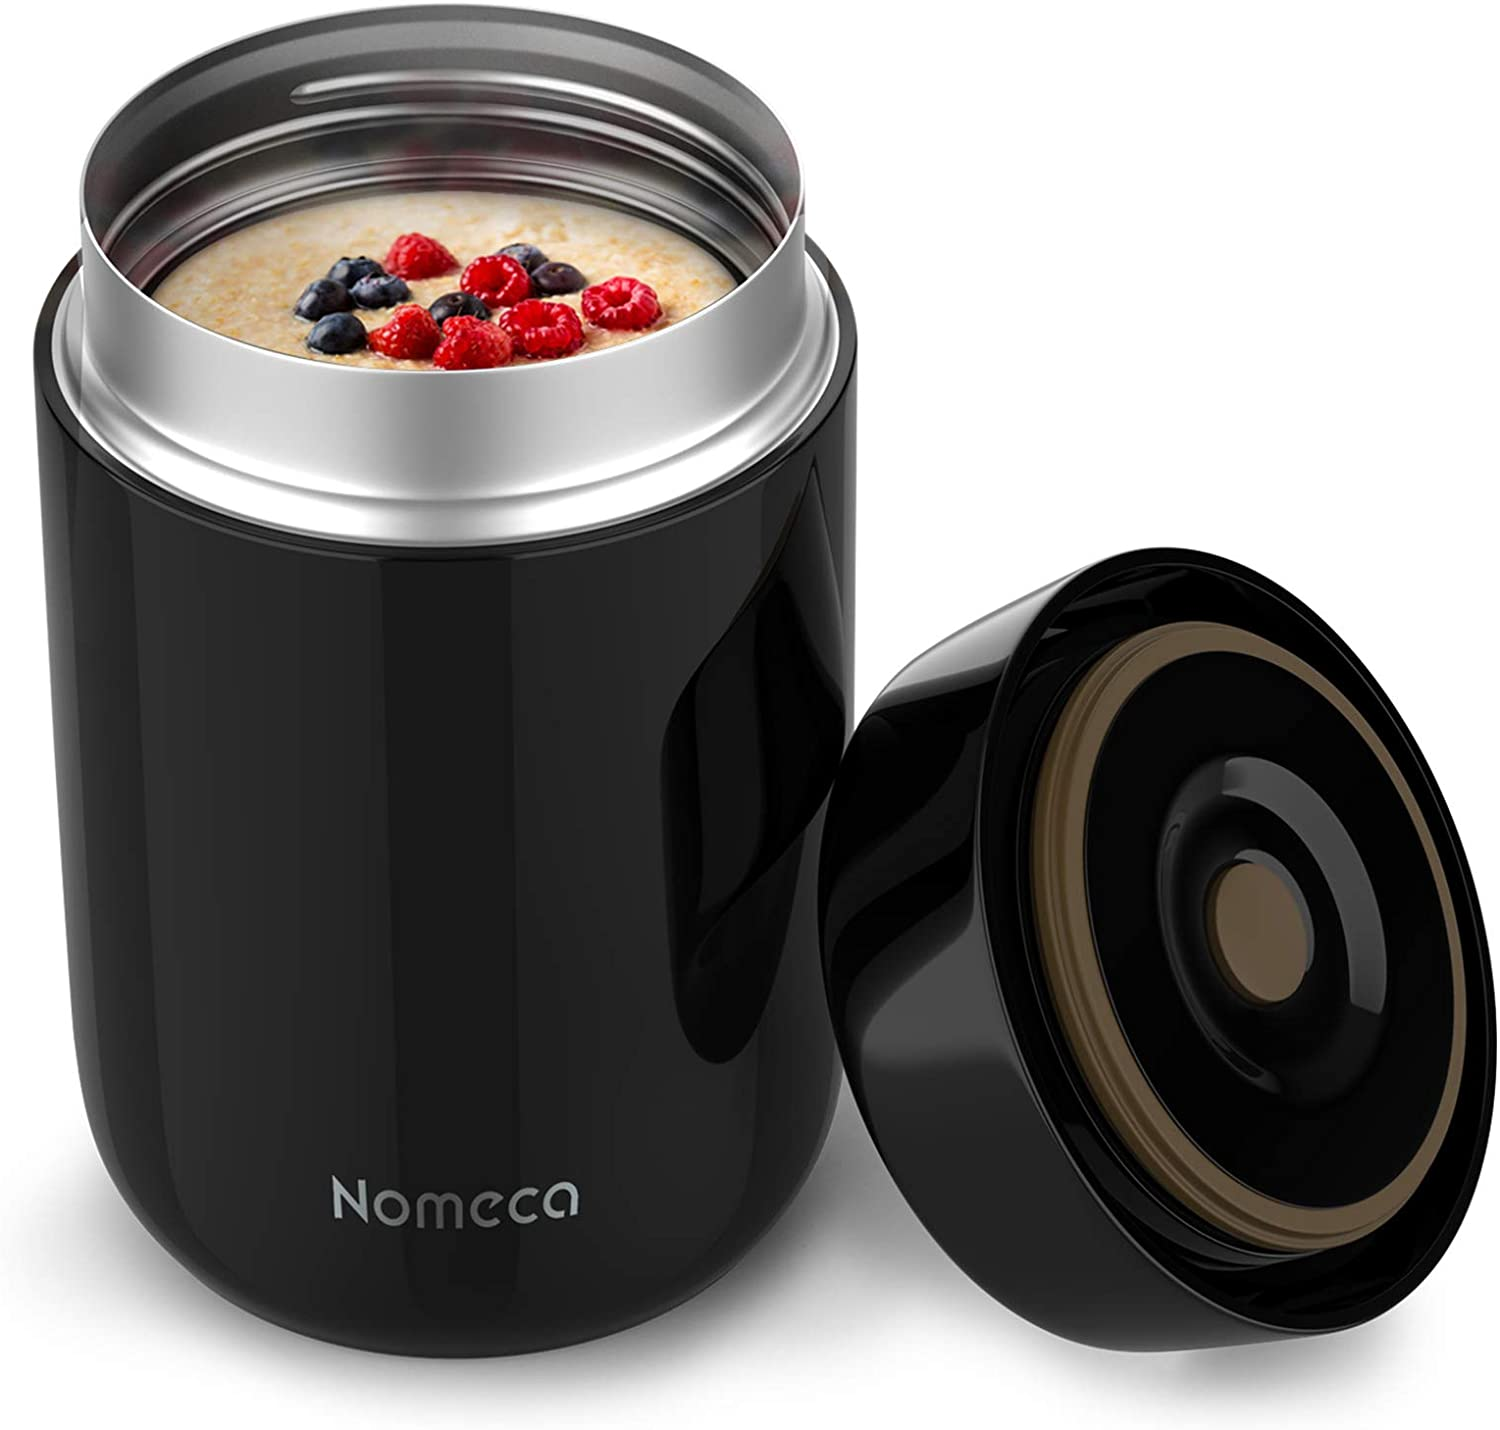 Insulated Food Jar - Nomeca 22Oz Stainless Steel Hot Food Lunch Container to Keep Food Hot Warm Cold for Adult Kids Leak Proof Vacuum Soup Containers Lunch Box for School Office Outdoor Camping, Black